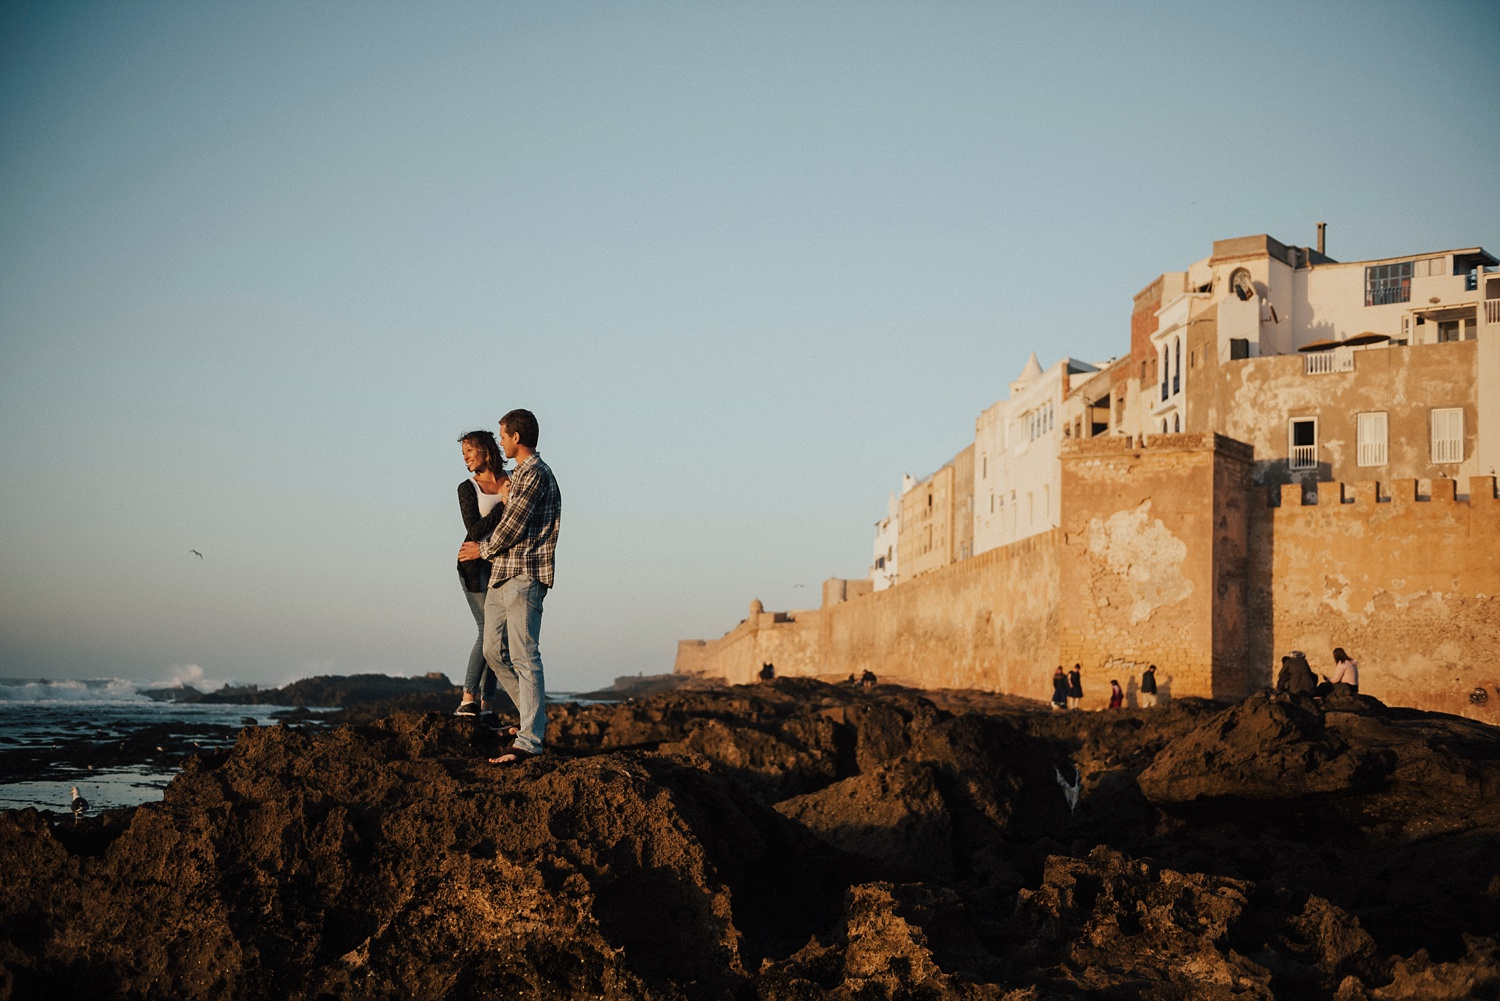 Nate-shepard-photography-engagment-destination-wedding-photographer-denver-morocco_0028.jpg